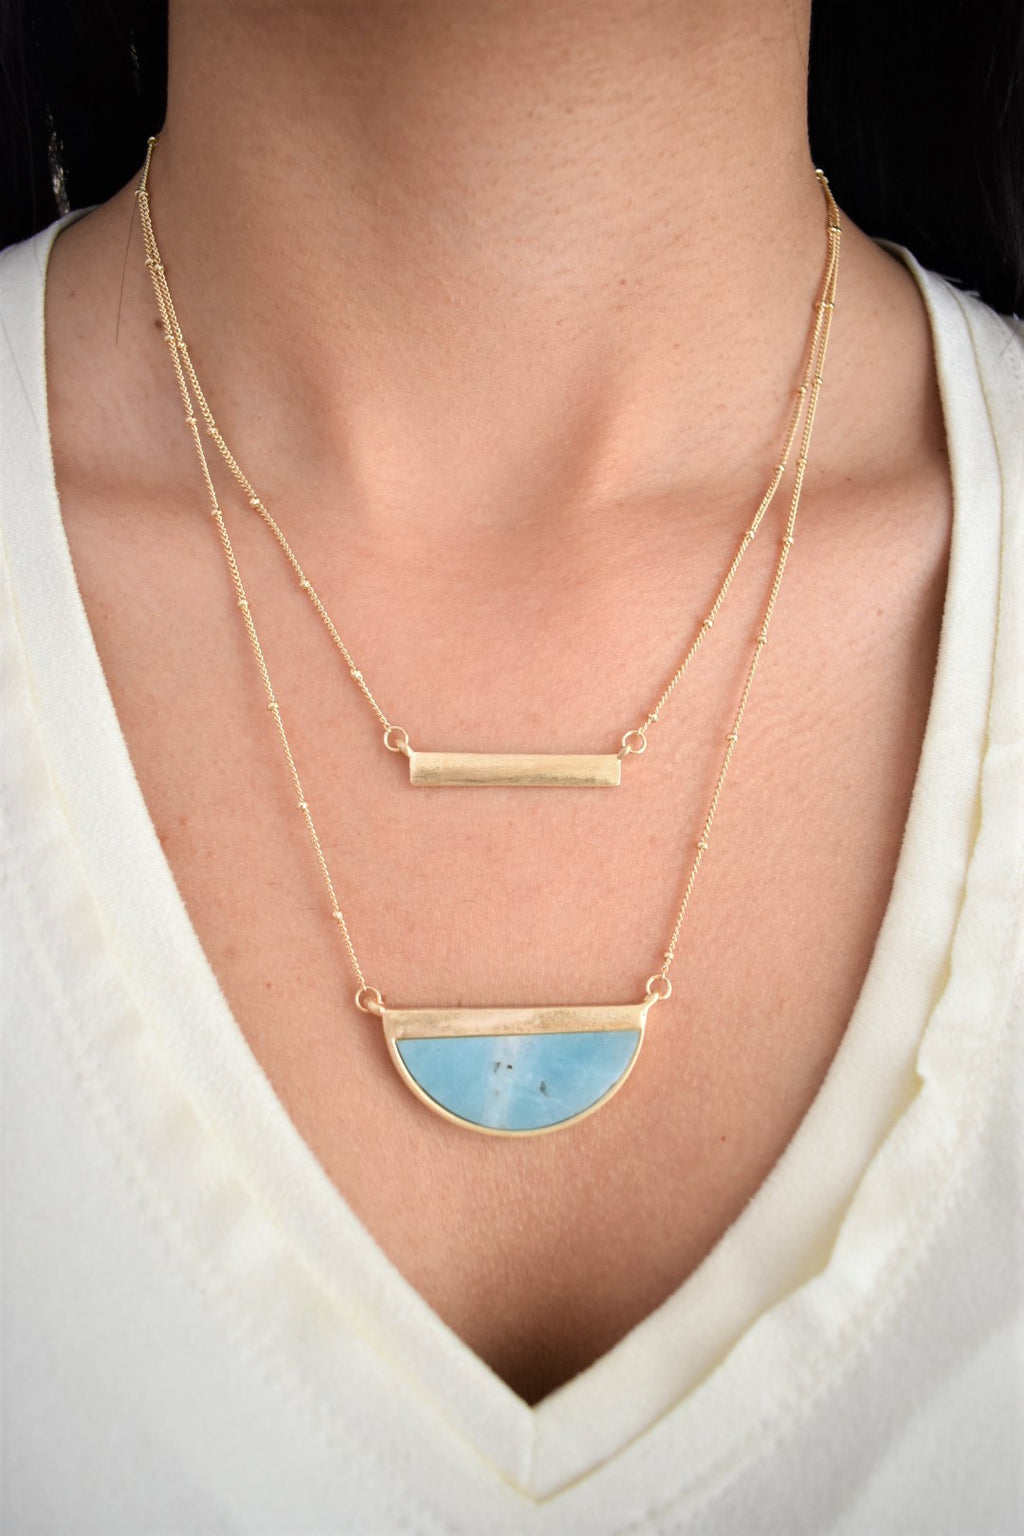 Layered Half Moon Necklace - Sweetly Striped